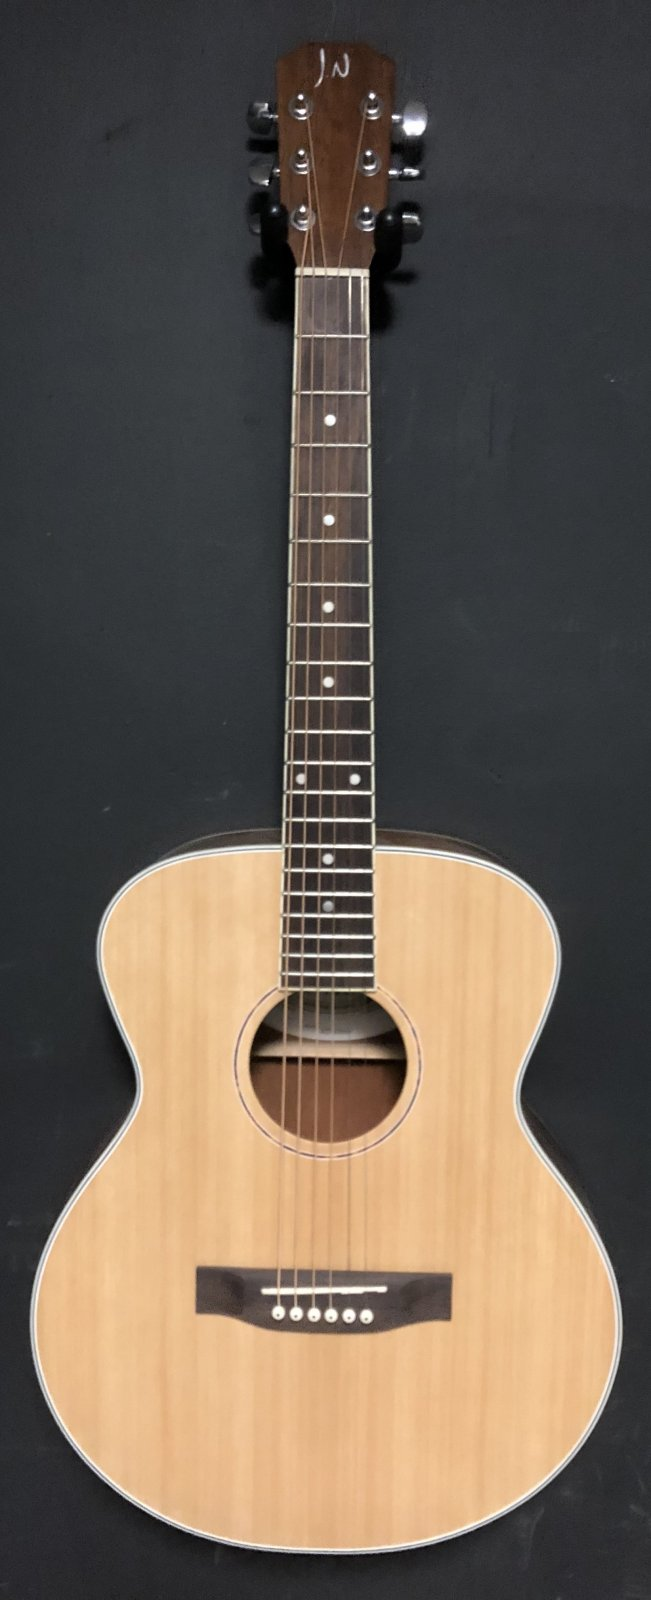 James Neligan ASY-A 3/4 Solid Top Acoustic